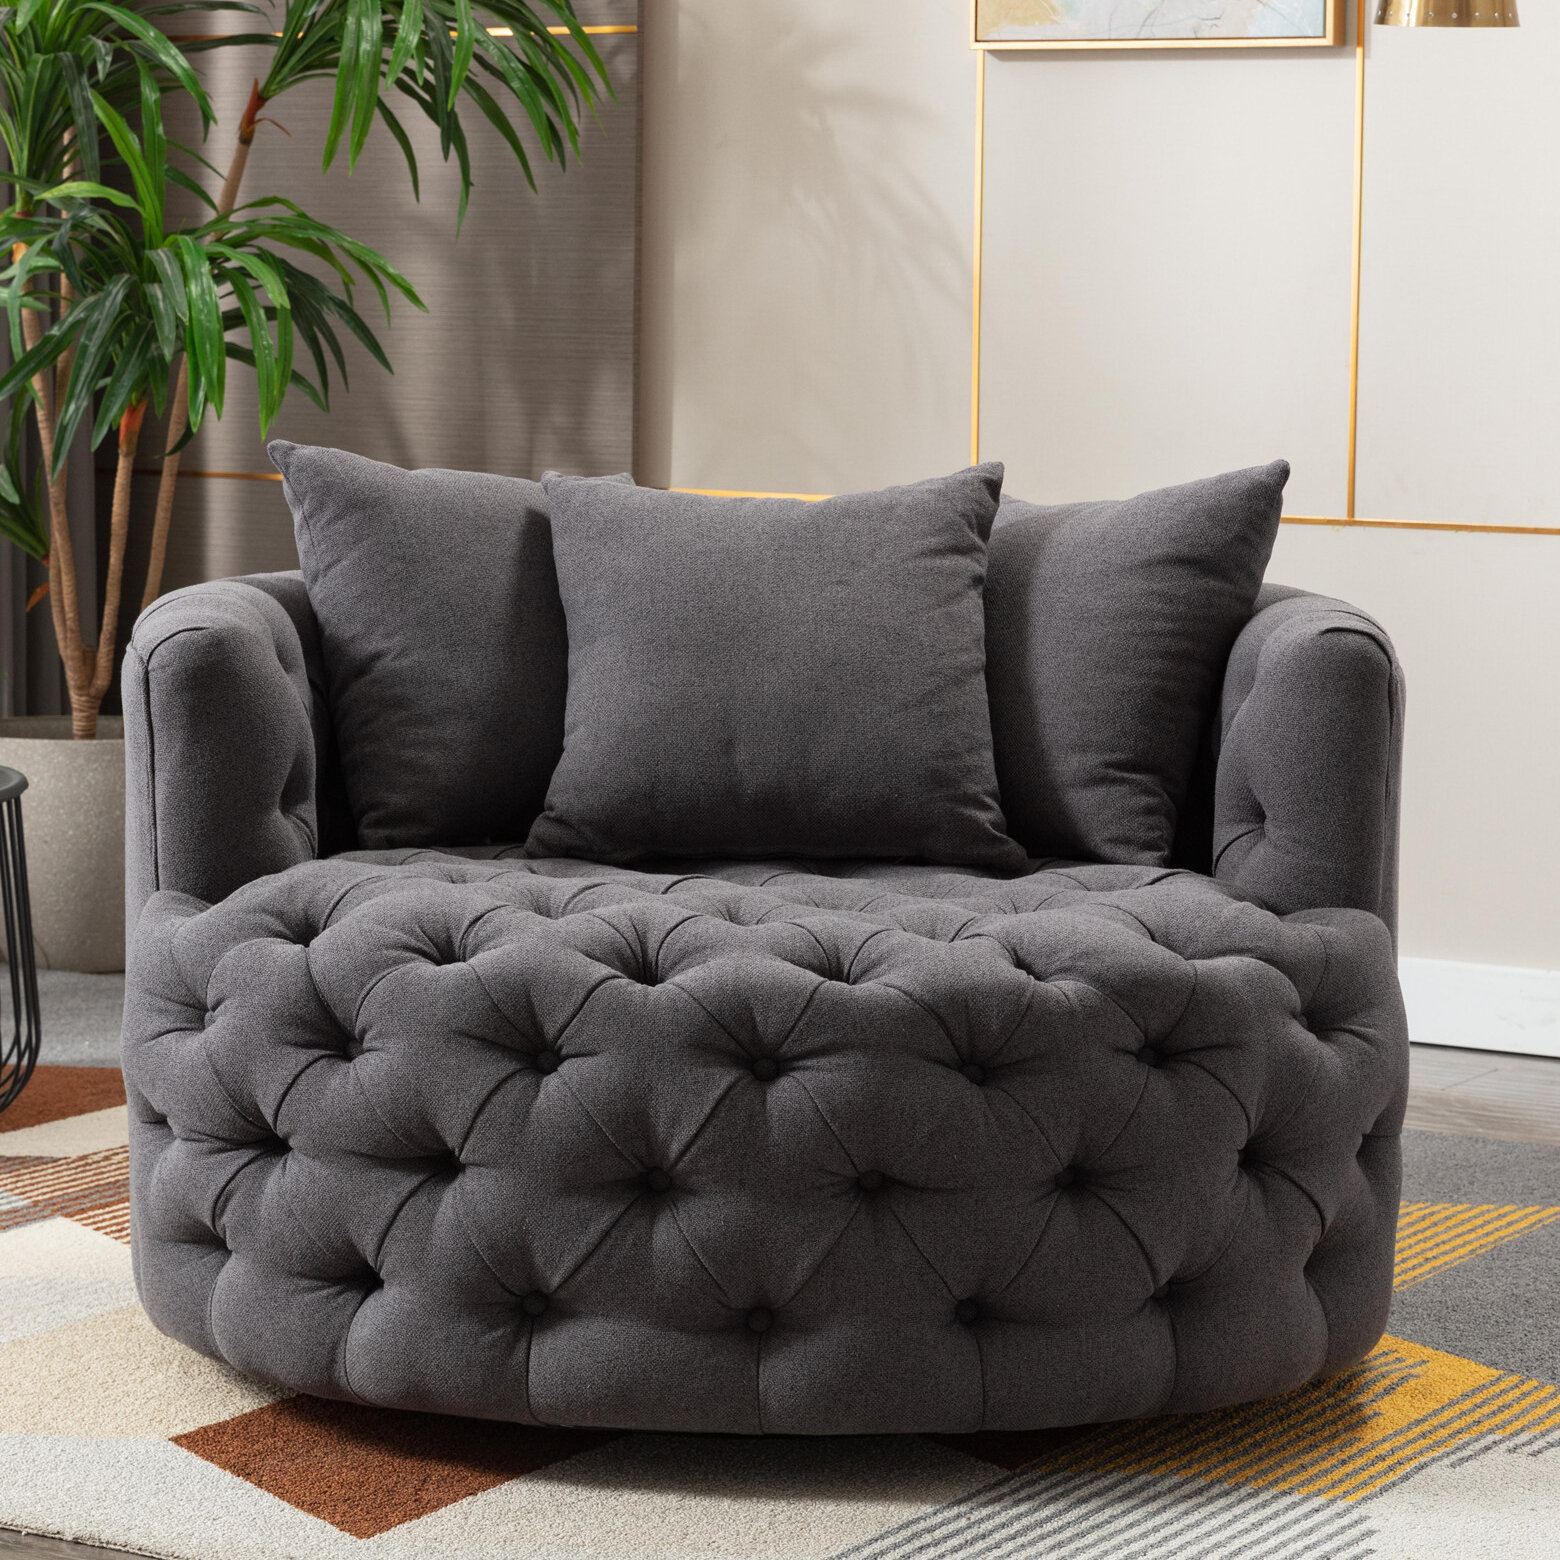 Featured Image of Dorcaster Barrel Chairs